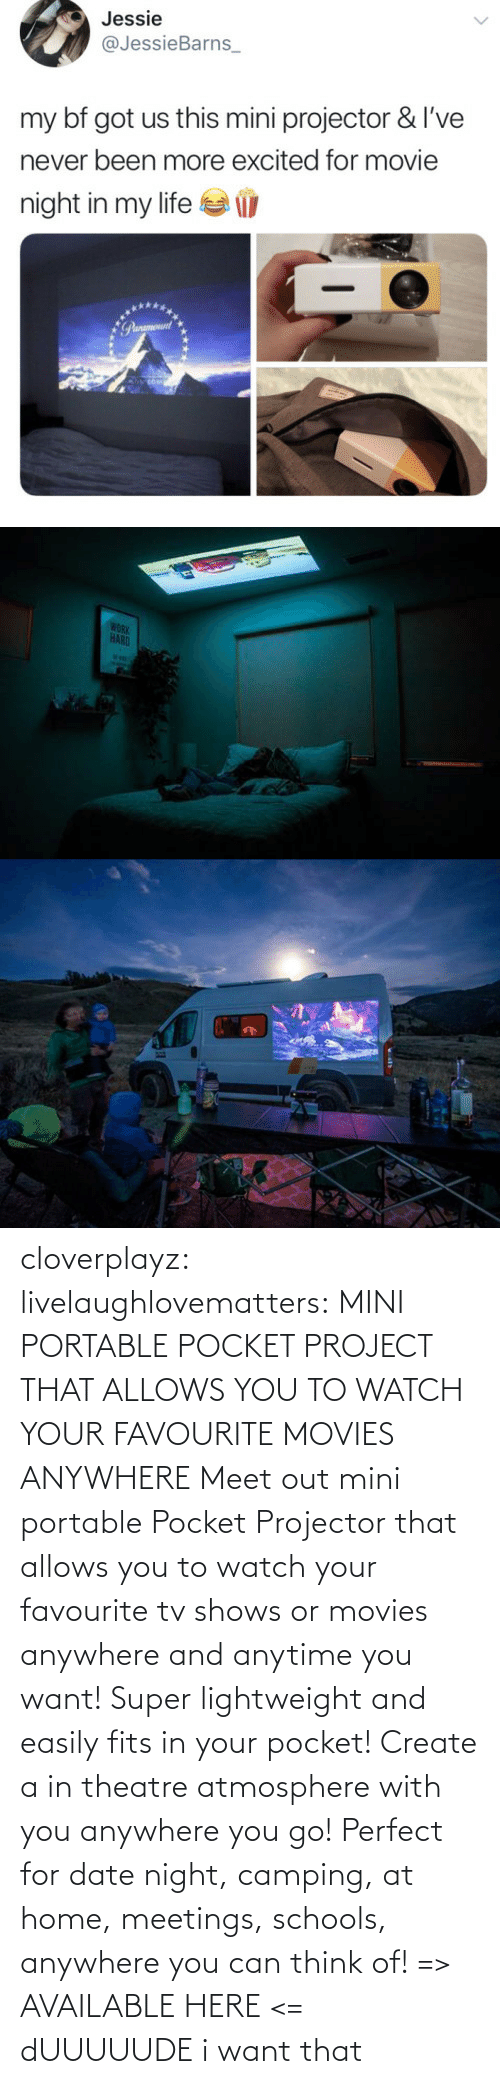 Movies, Tumblr, and TV Shows: cloverplayz: livelaughlovematters:  MINI PORTABLE POCKET PROJECT THAT ALLOWS YOU TO WATCH YOUR FAVOURITE MOVIES ANYWHERE Meet out mini portable Pocket Projector that allows you to watch your favourite tv shows or movies anywhere and anytime you want! Super lightweight and easily fits in your pocket! Create a in theatre atmosphere with you anywhere you go! Perfect for date night, camping, at home, meetings, schools, anywhere you can think of! => AVAILABLE HERE <=  dUUUUUDE i want that